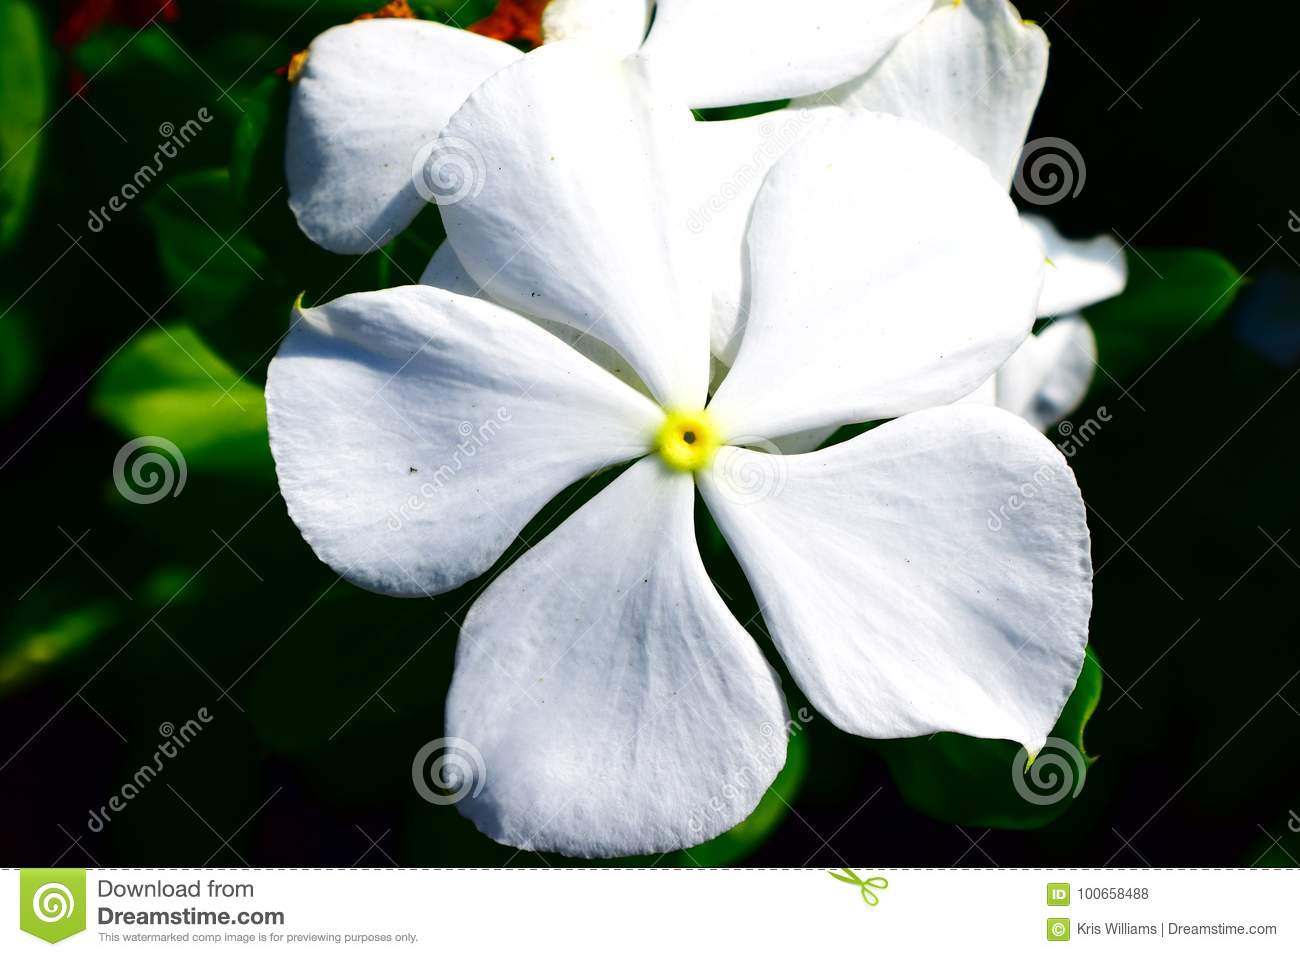 White Vinca 5 Petal Flower Stock Photo Image Of Large 100658488